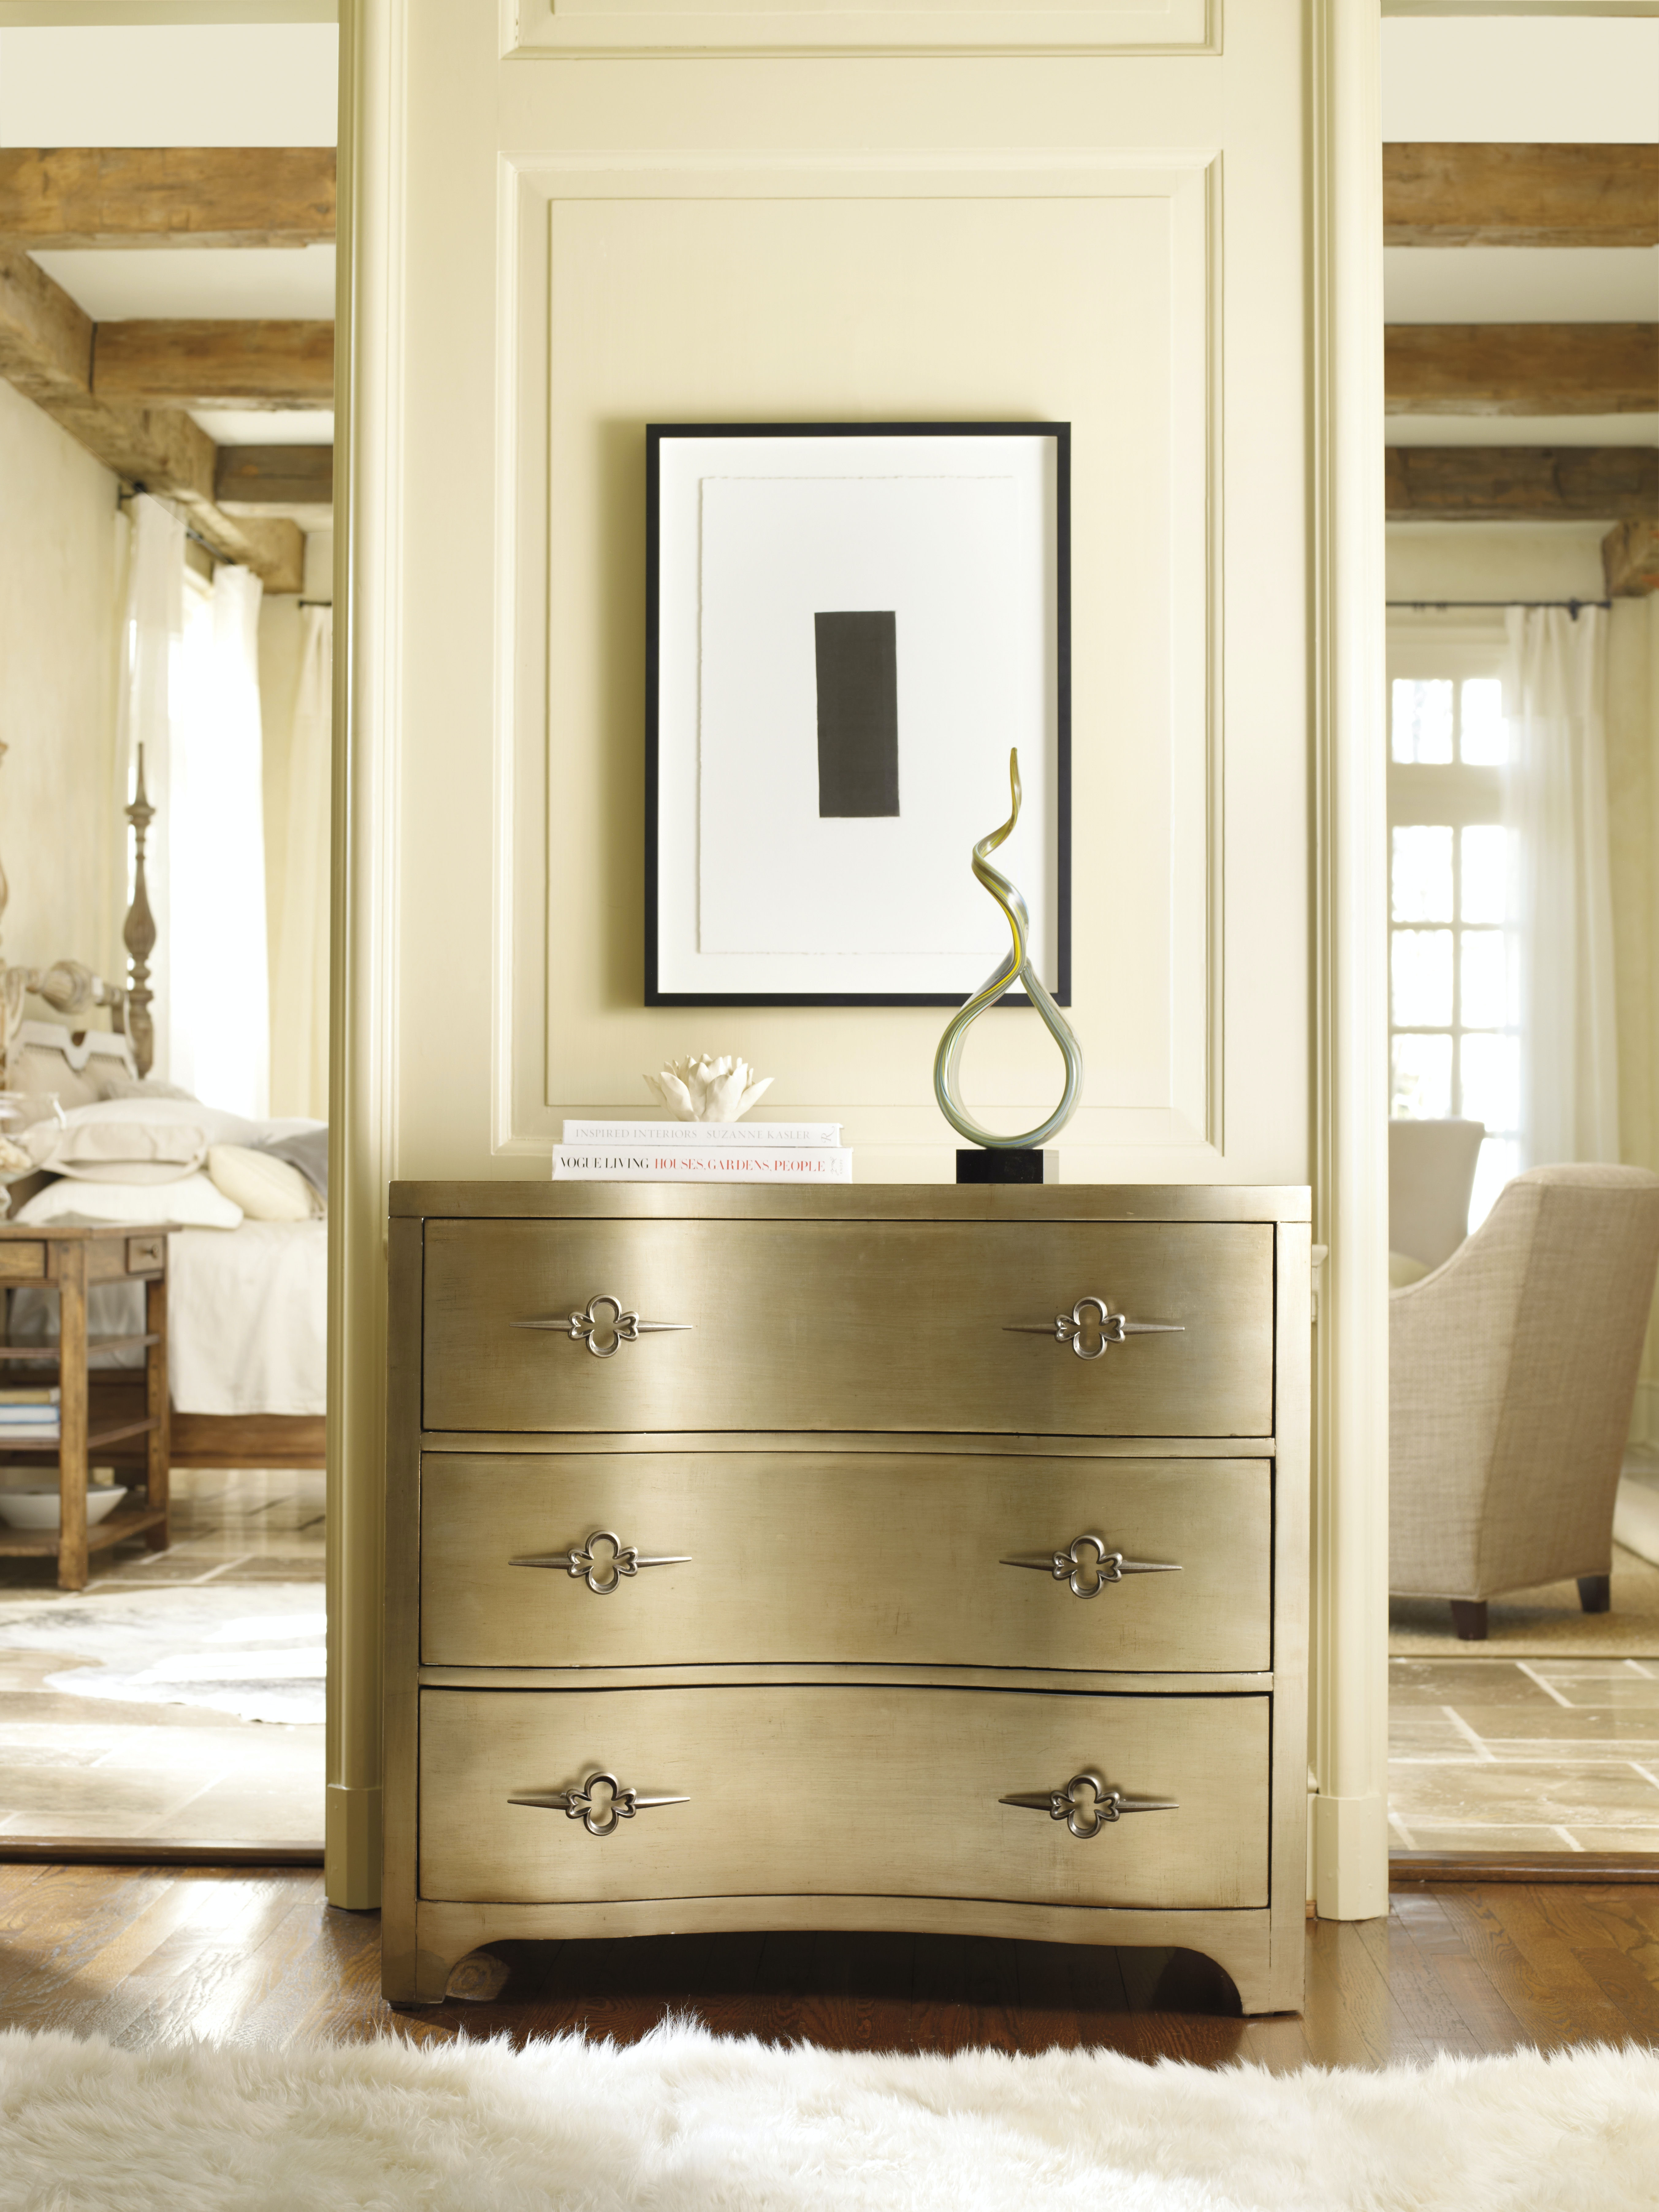 Awesome Hooker Furniture Sanctuary Three Drawer Shaped Front Gold Chest 3008 85004